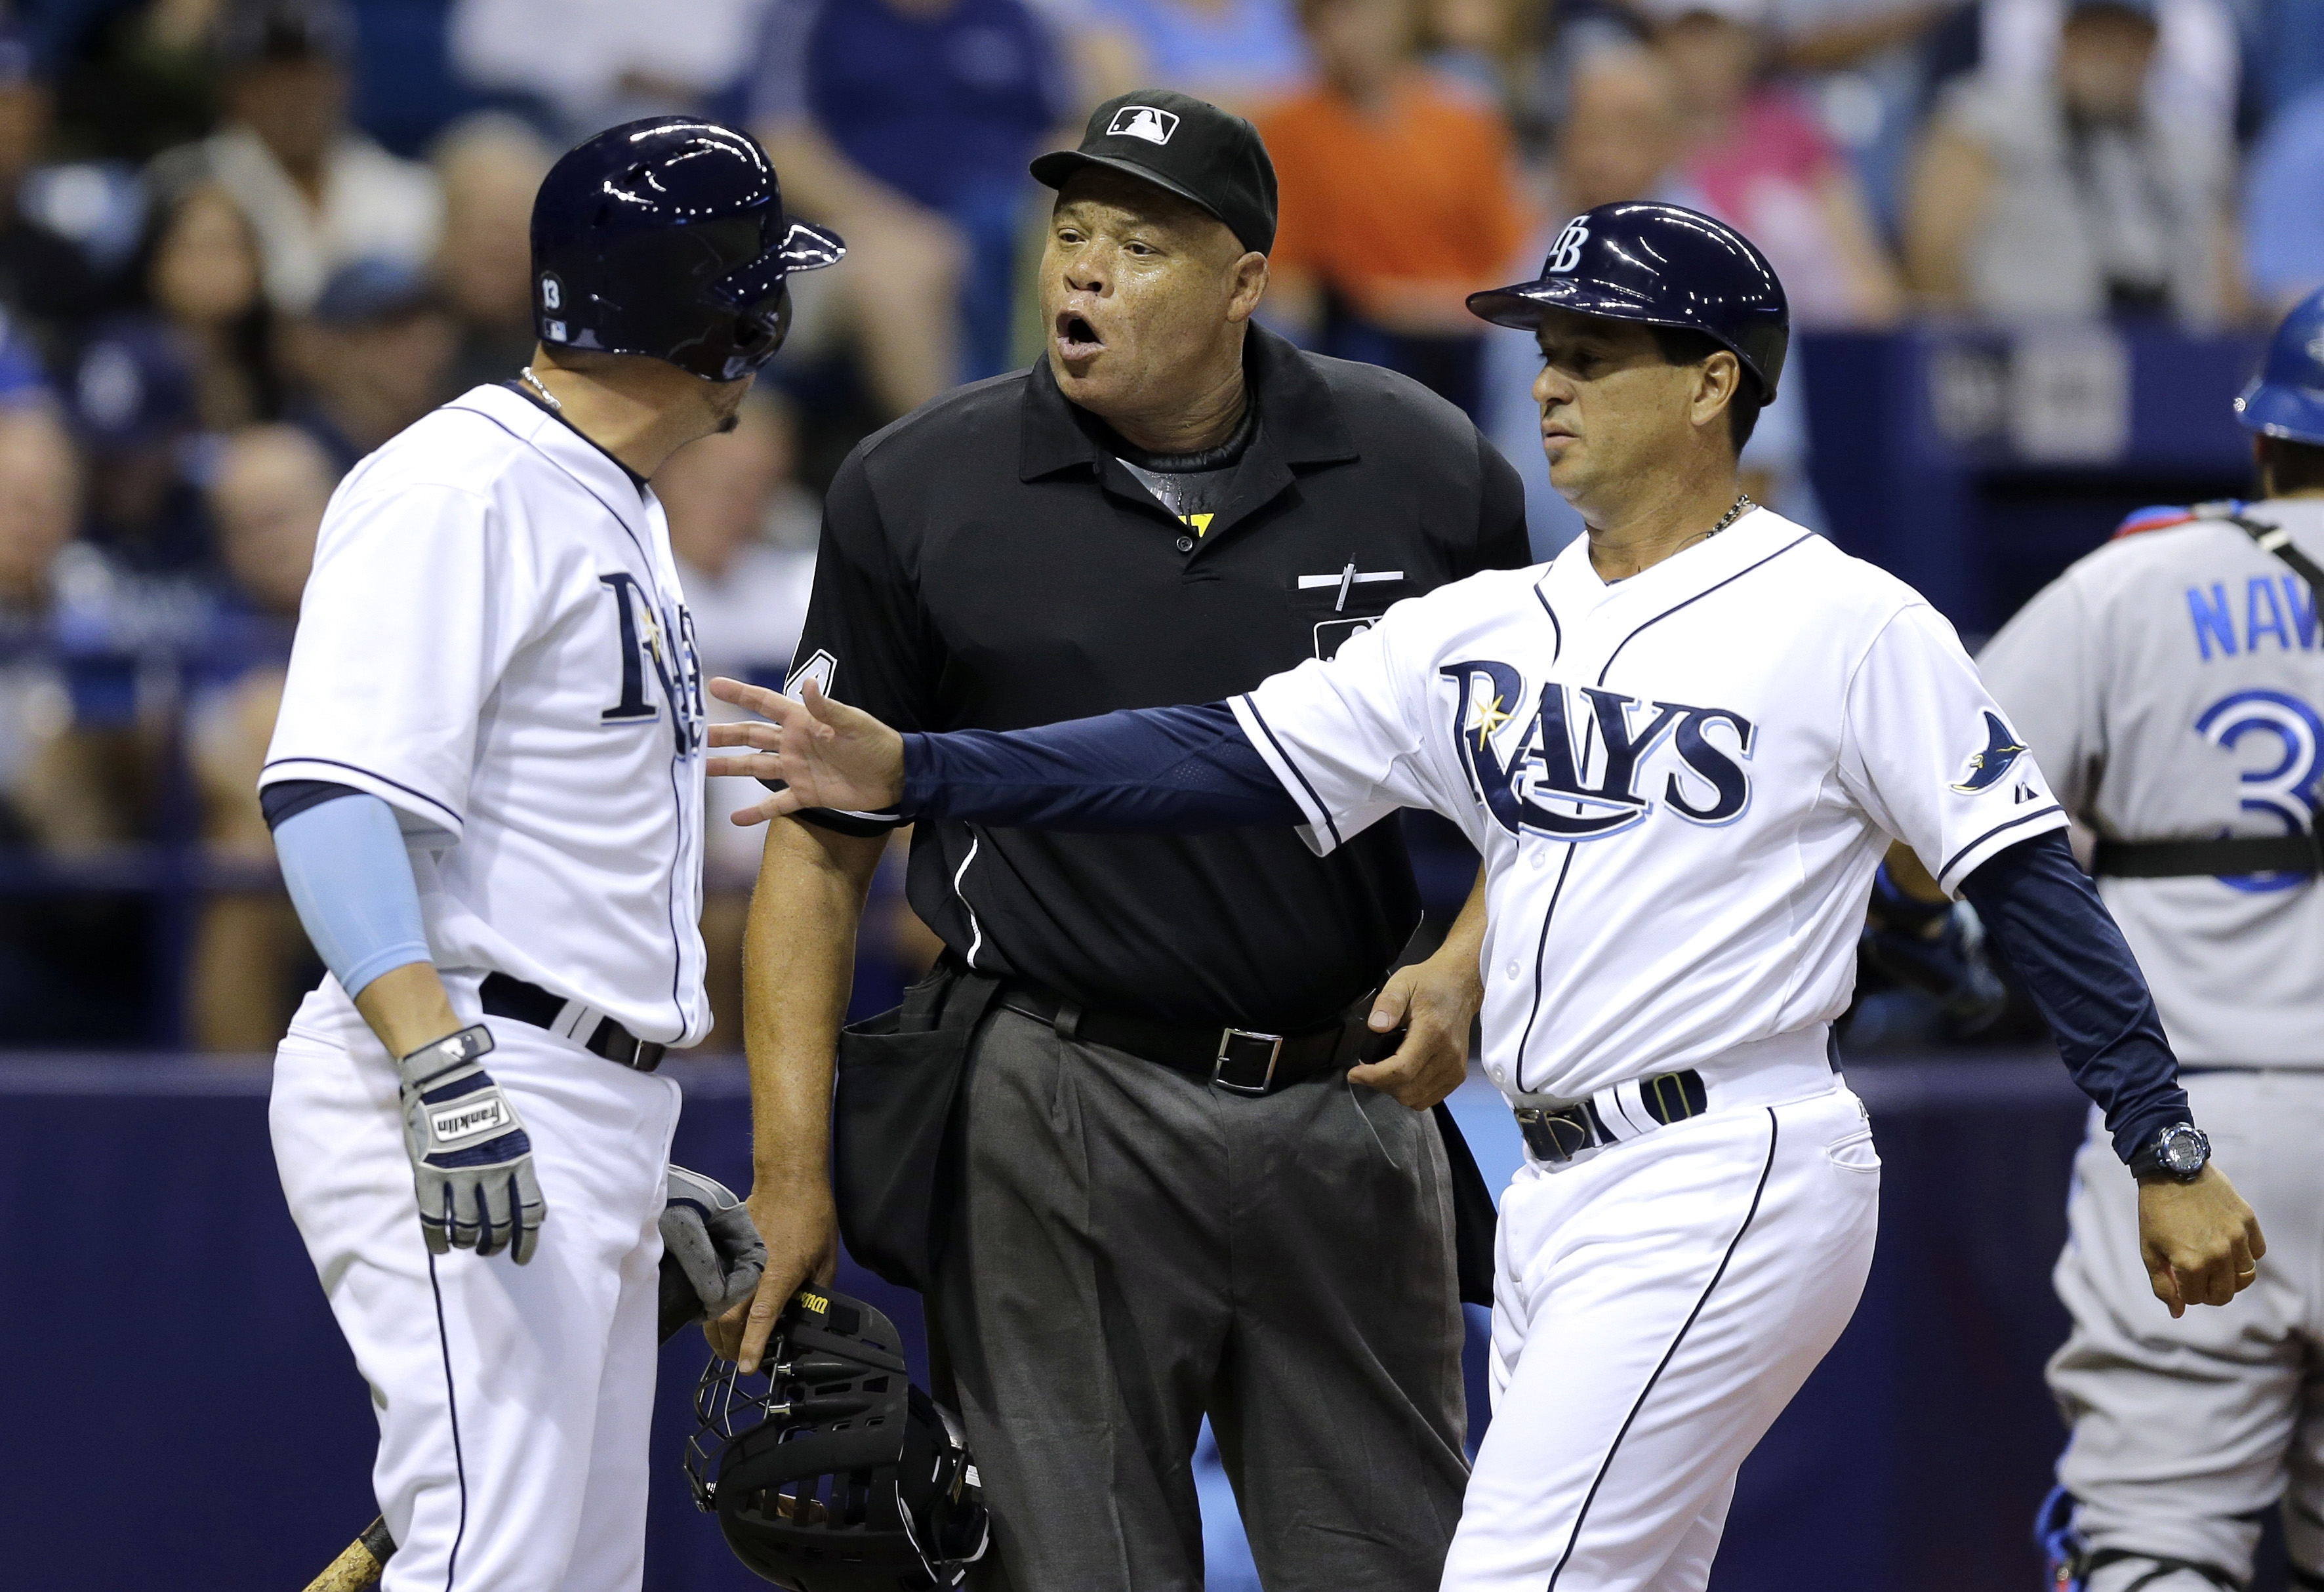 Tampa Bay Rays third base coach Charlie Montoyo, right, restrains Asdrubal Cabrera, left, as he argues a called strike with home plate umpire Kerwin Danley during the fifth inning of a baseball game against the Toronto Blue Jays Monday, June 22, 2015, in